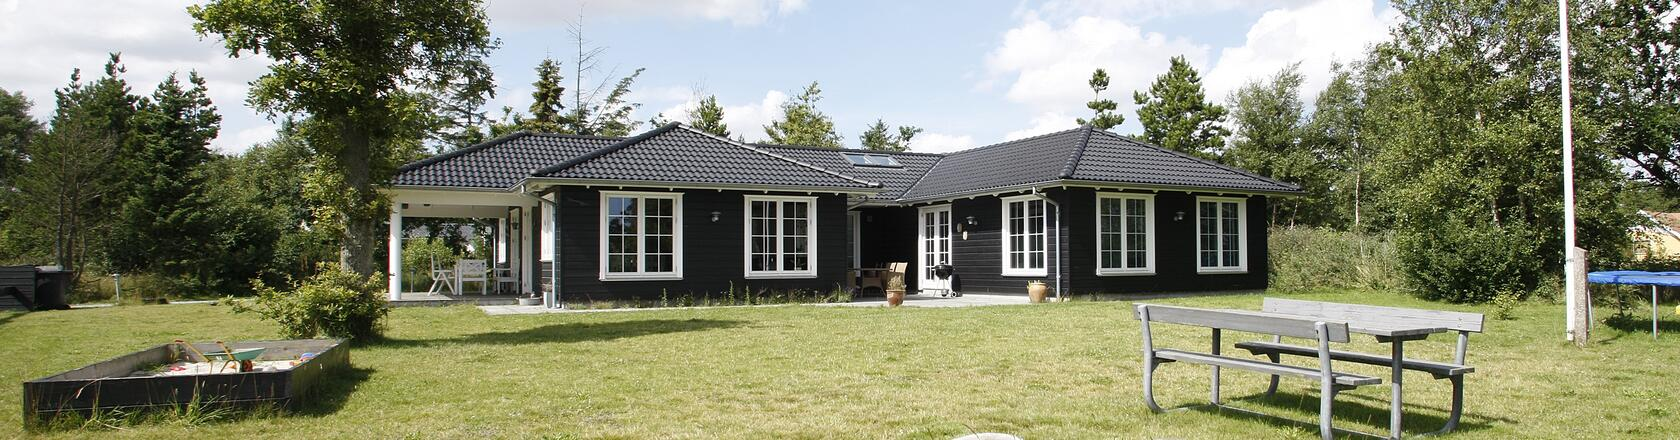 Sæby/Sulbæk in Denmark - Rent a holiday home  with DanCenter